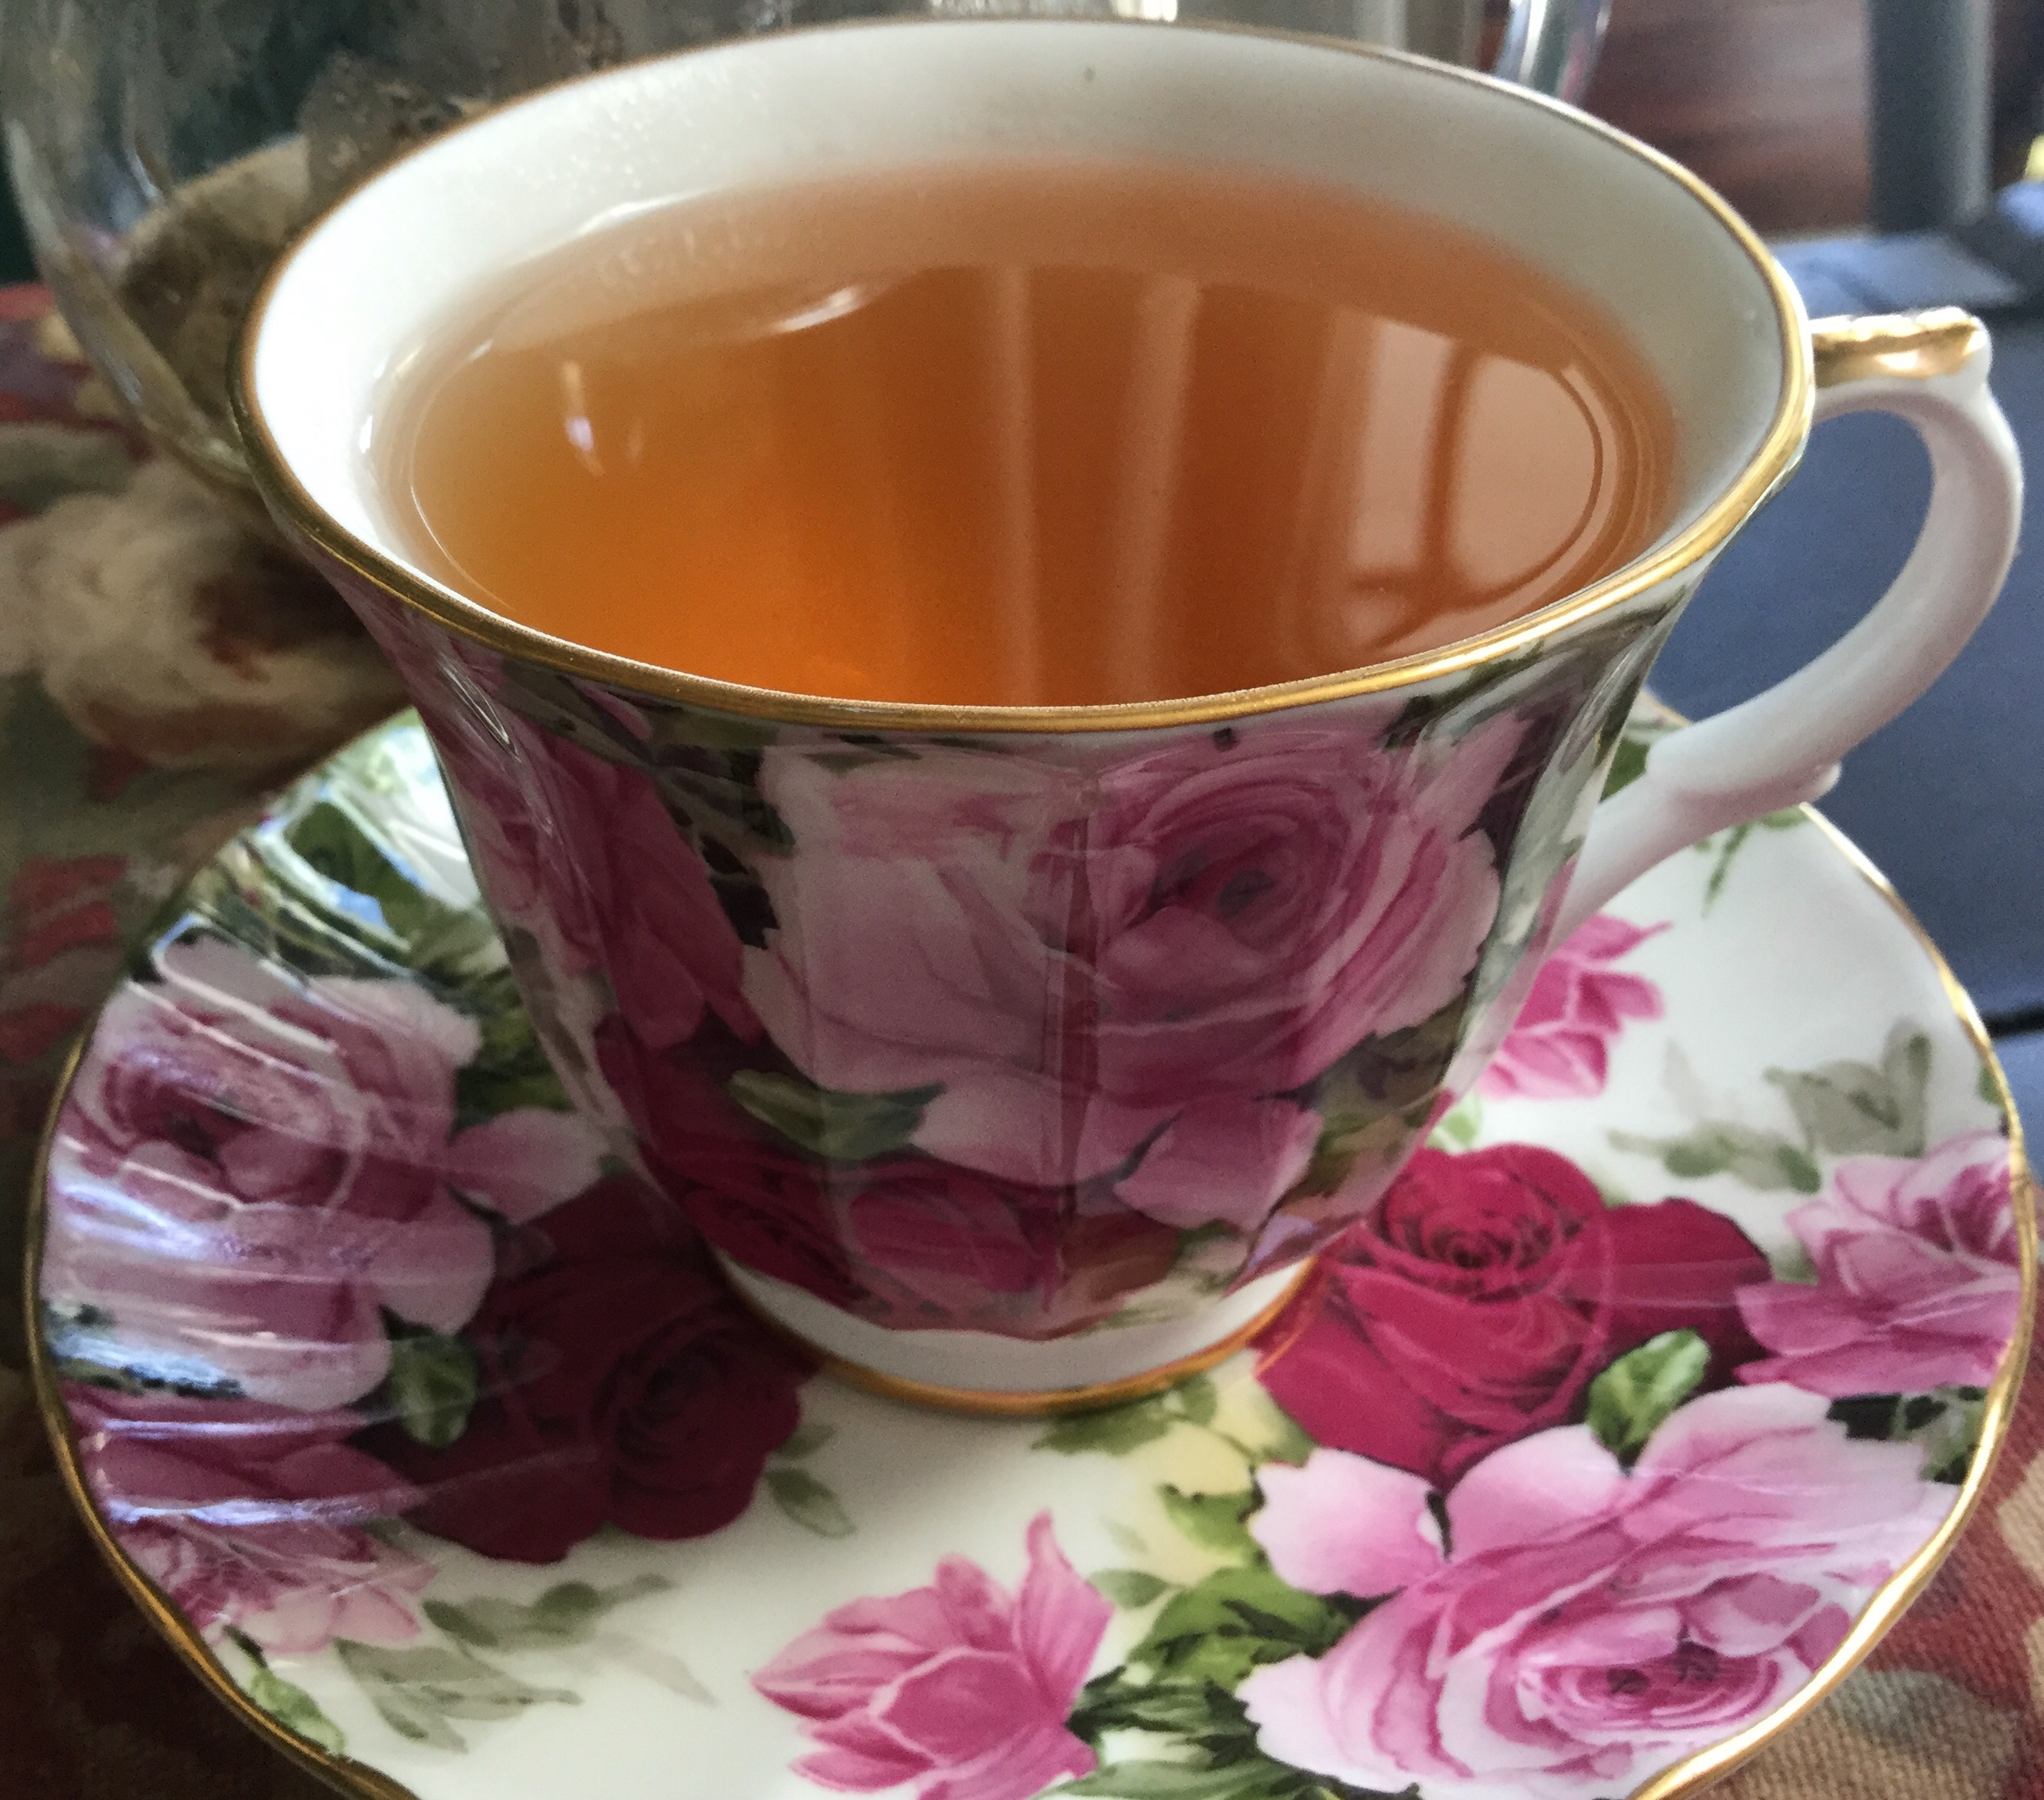 A lovely spring brew in teacup & saucer.